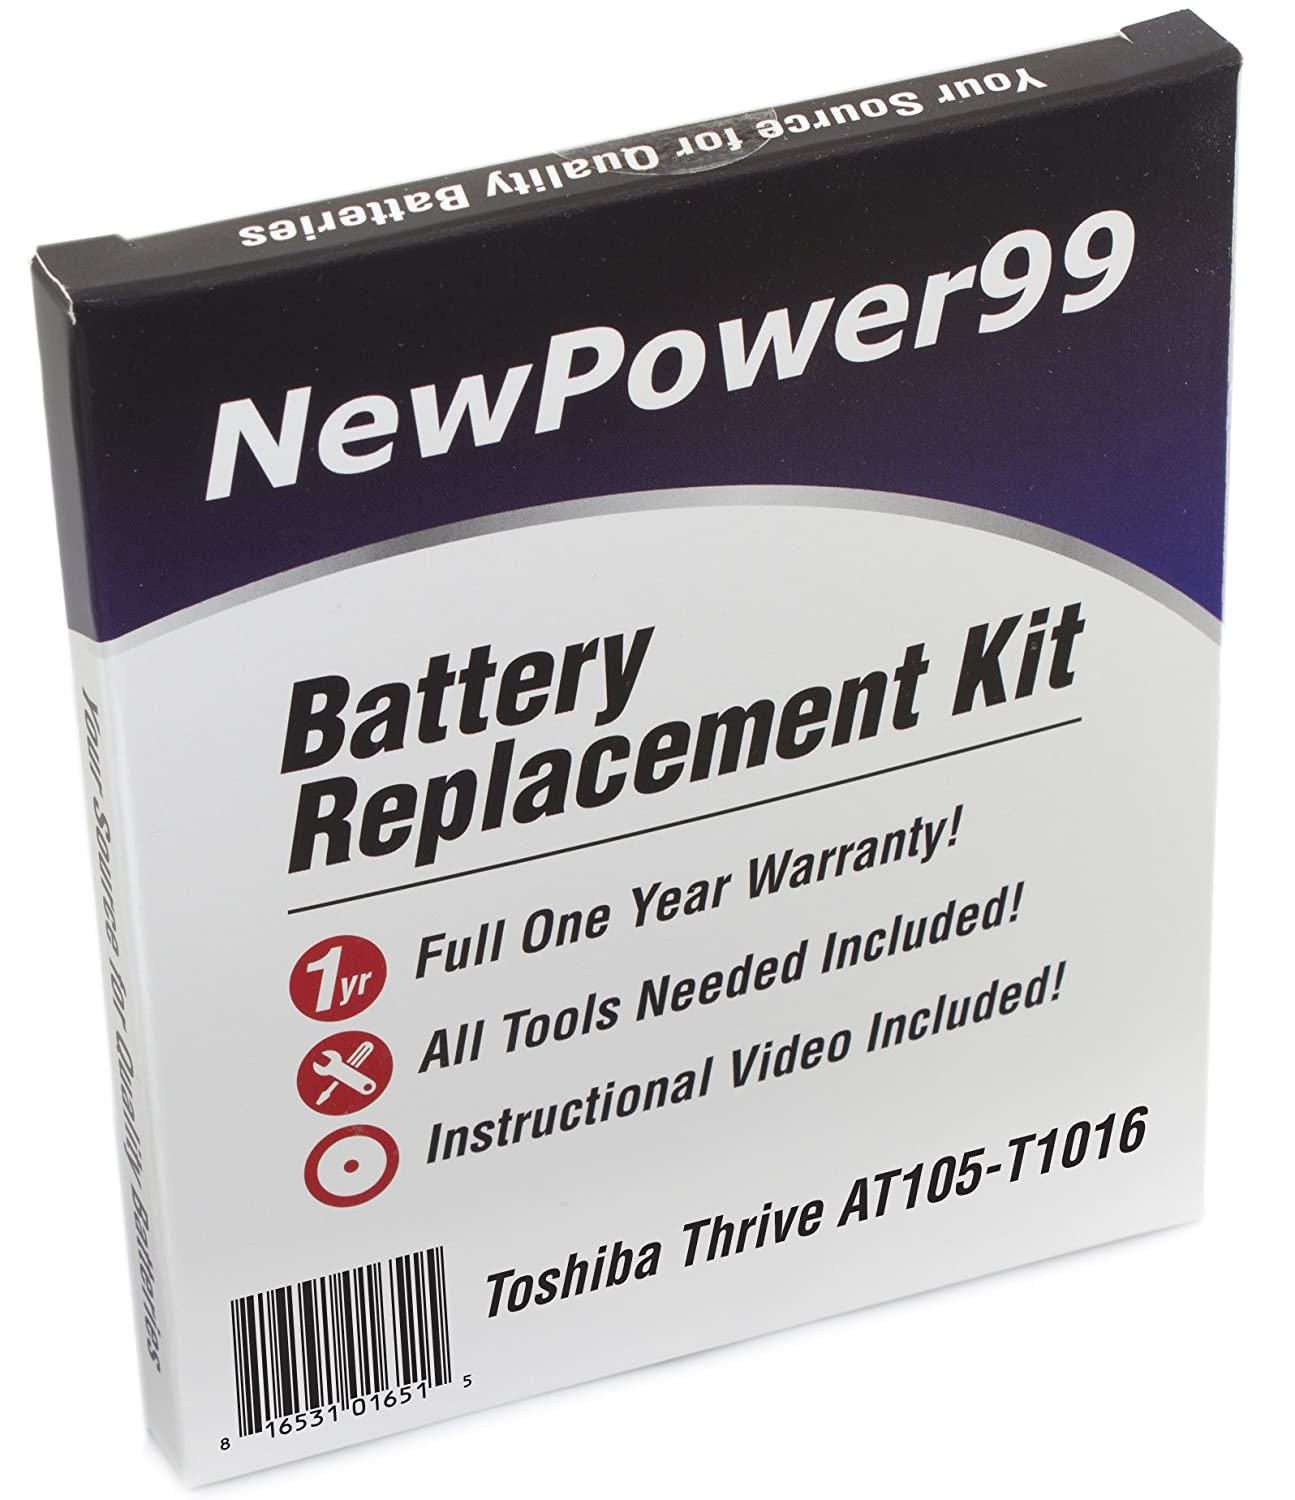 Amazon.com: Toshiba Thrive AT105-T016 Battery Replacement Kit with